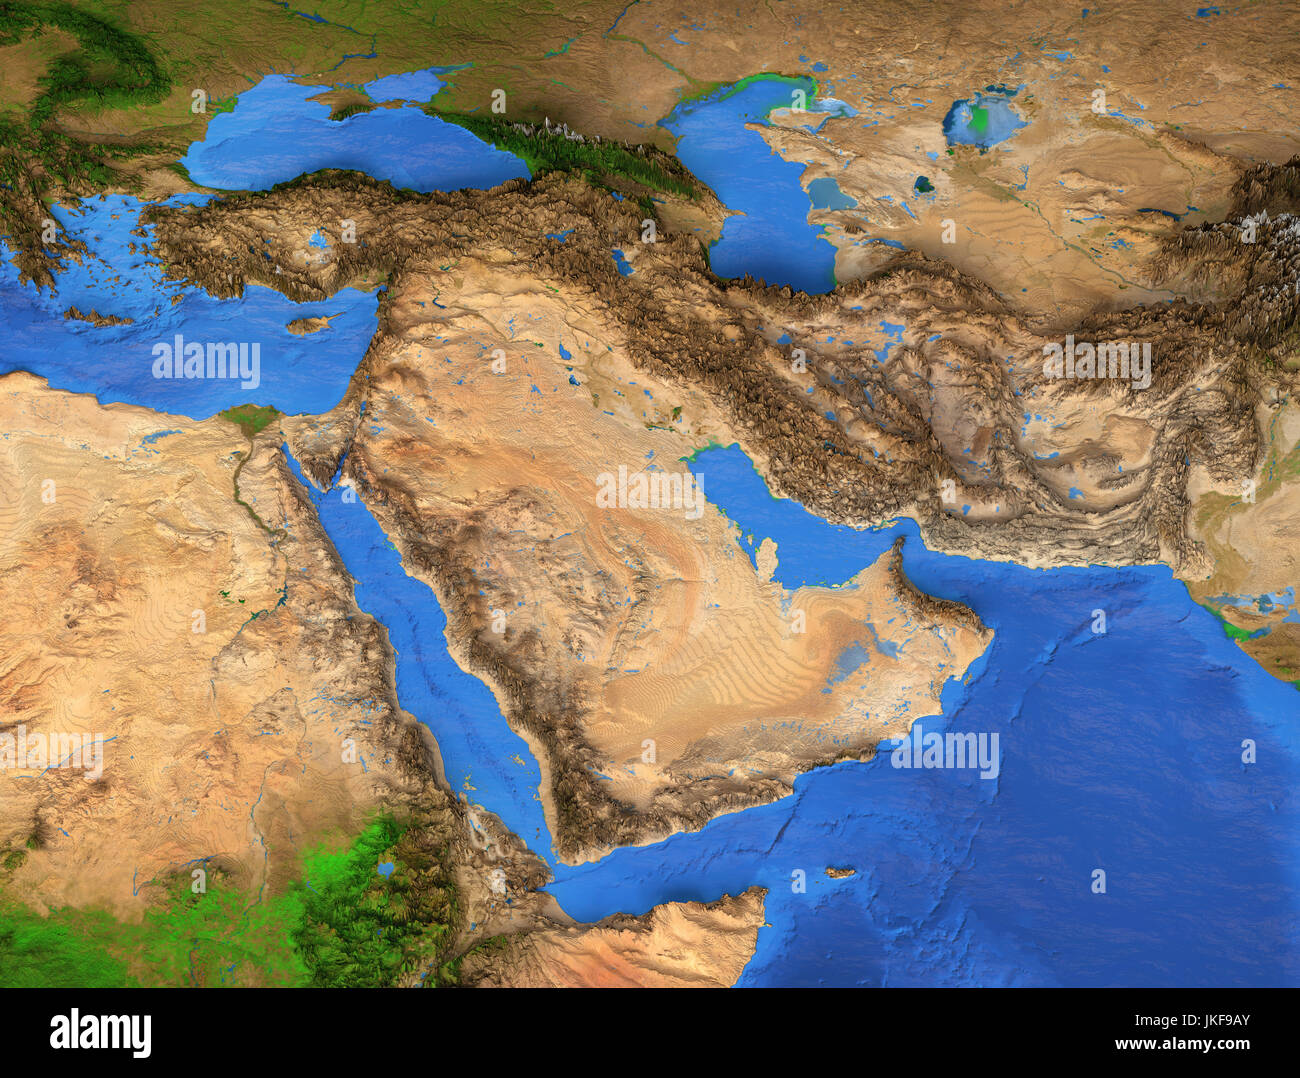 Middle East Map Gulf Region Detailed Satellite View Of The - World satellite map view